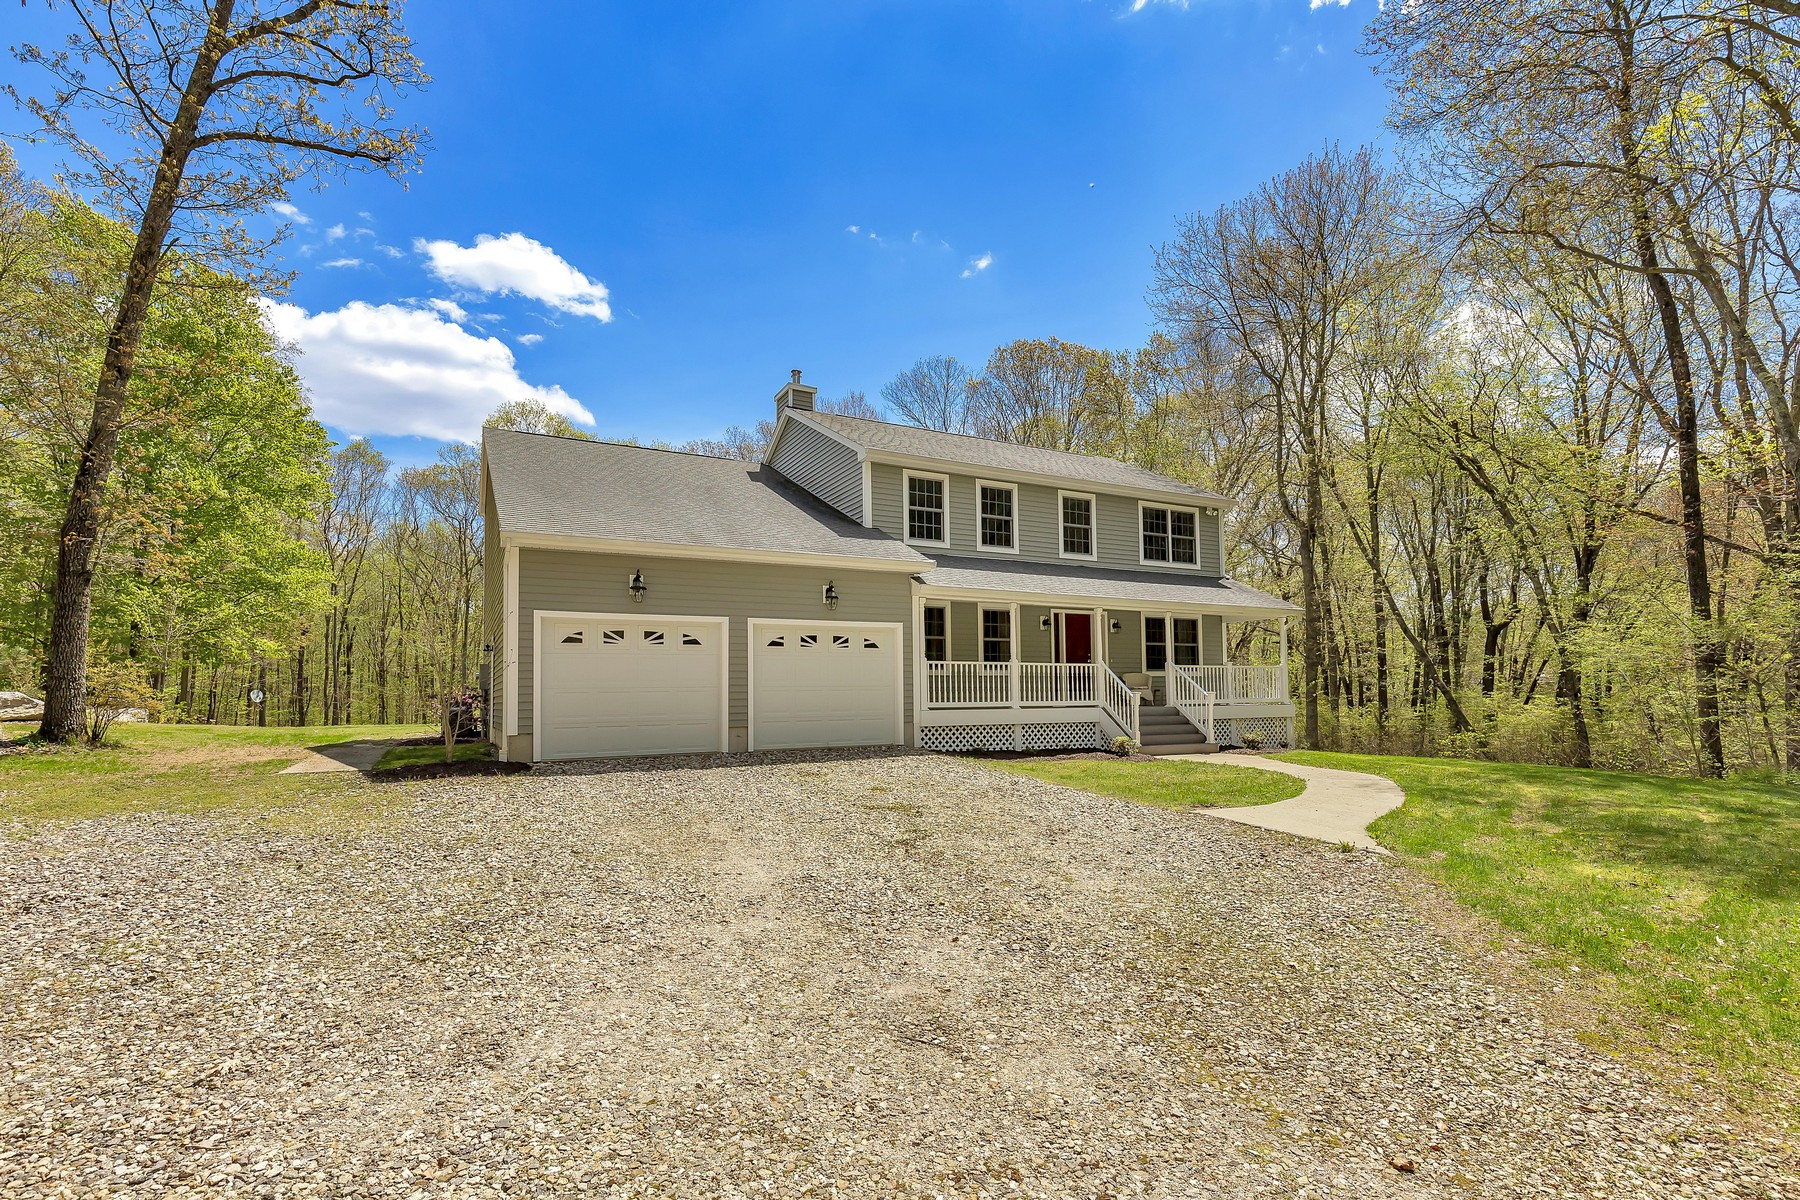 Single Family Homes للـ Sale في Custom Designed Home On 3.64 Tranquil Acres 358 Bozrah Street, Bozrah, Connecticut 06334 United States